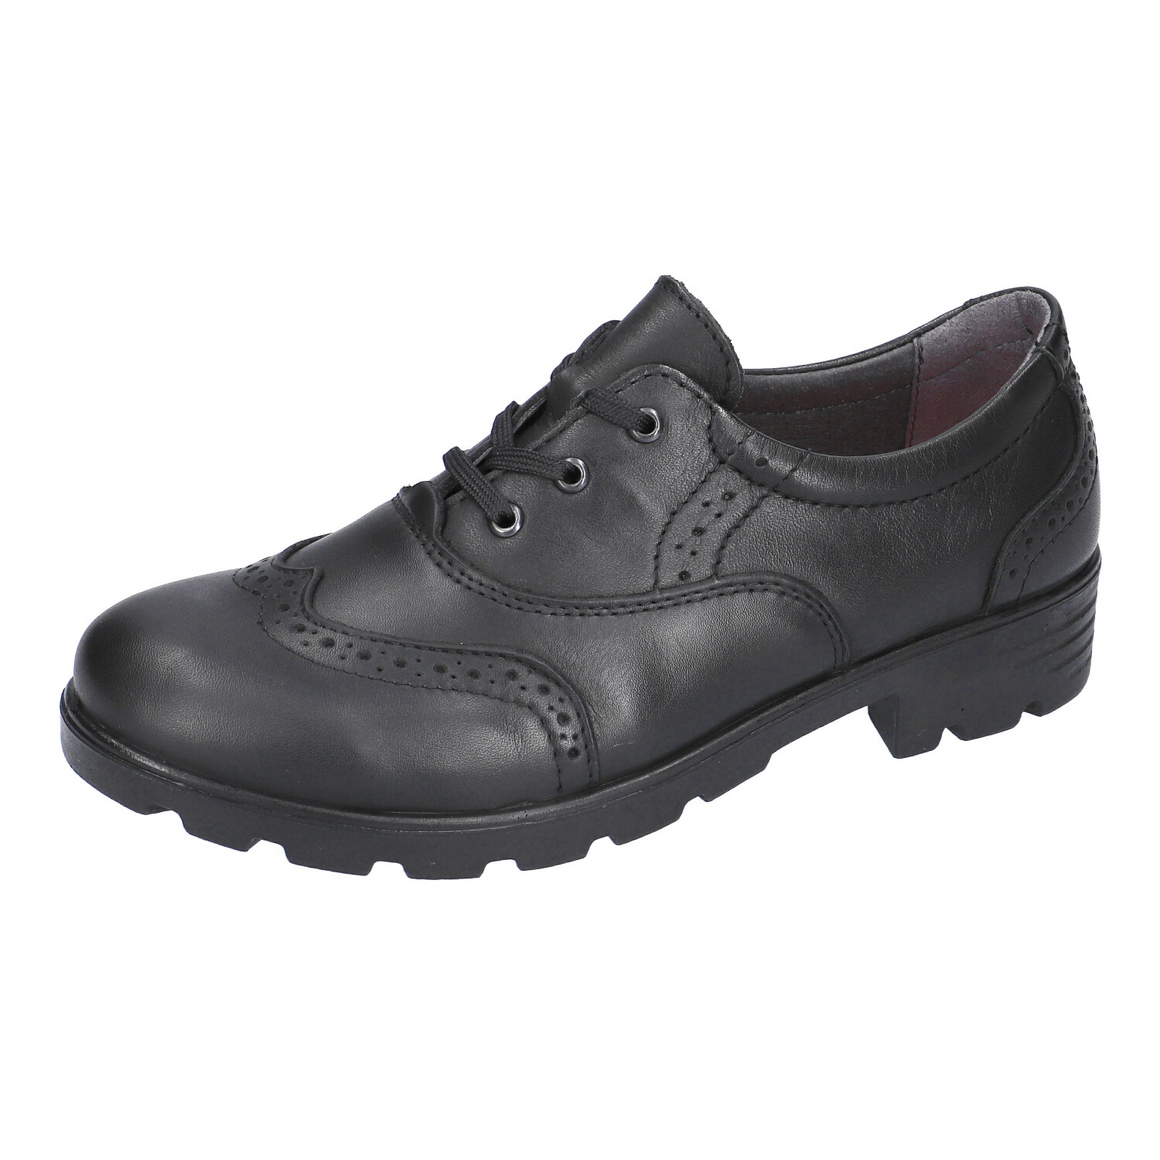 Lucy School Shoes for Girls in Black